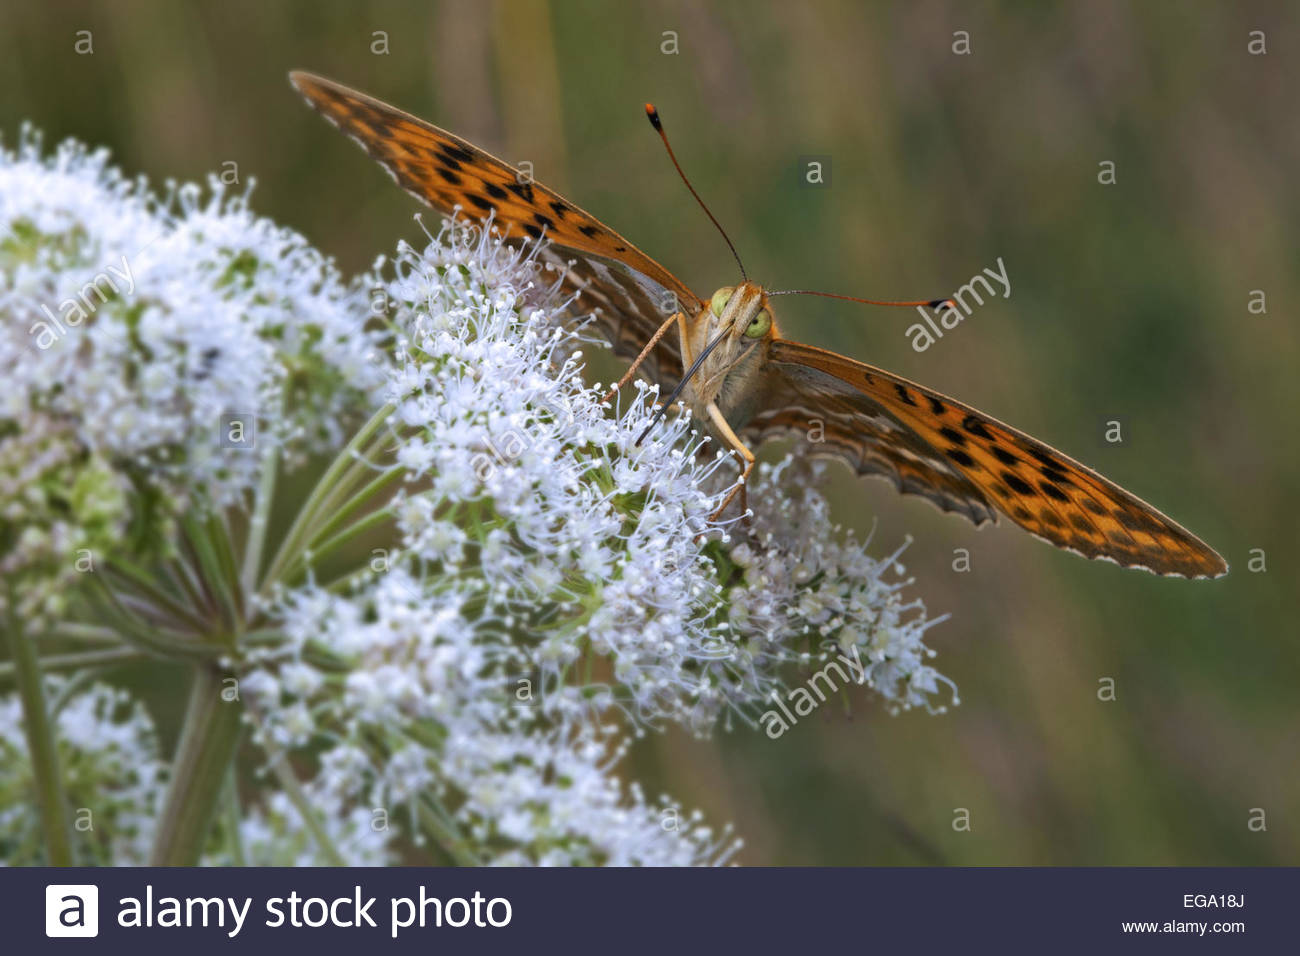 Silver-washed fritillary (Argynnis paphia) drinking nectar with proboscis from flower - Stock Image